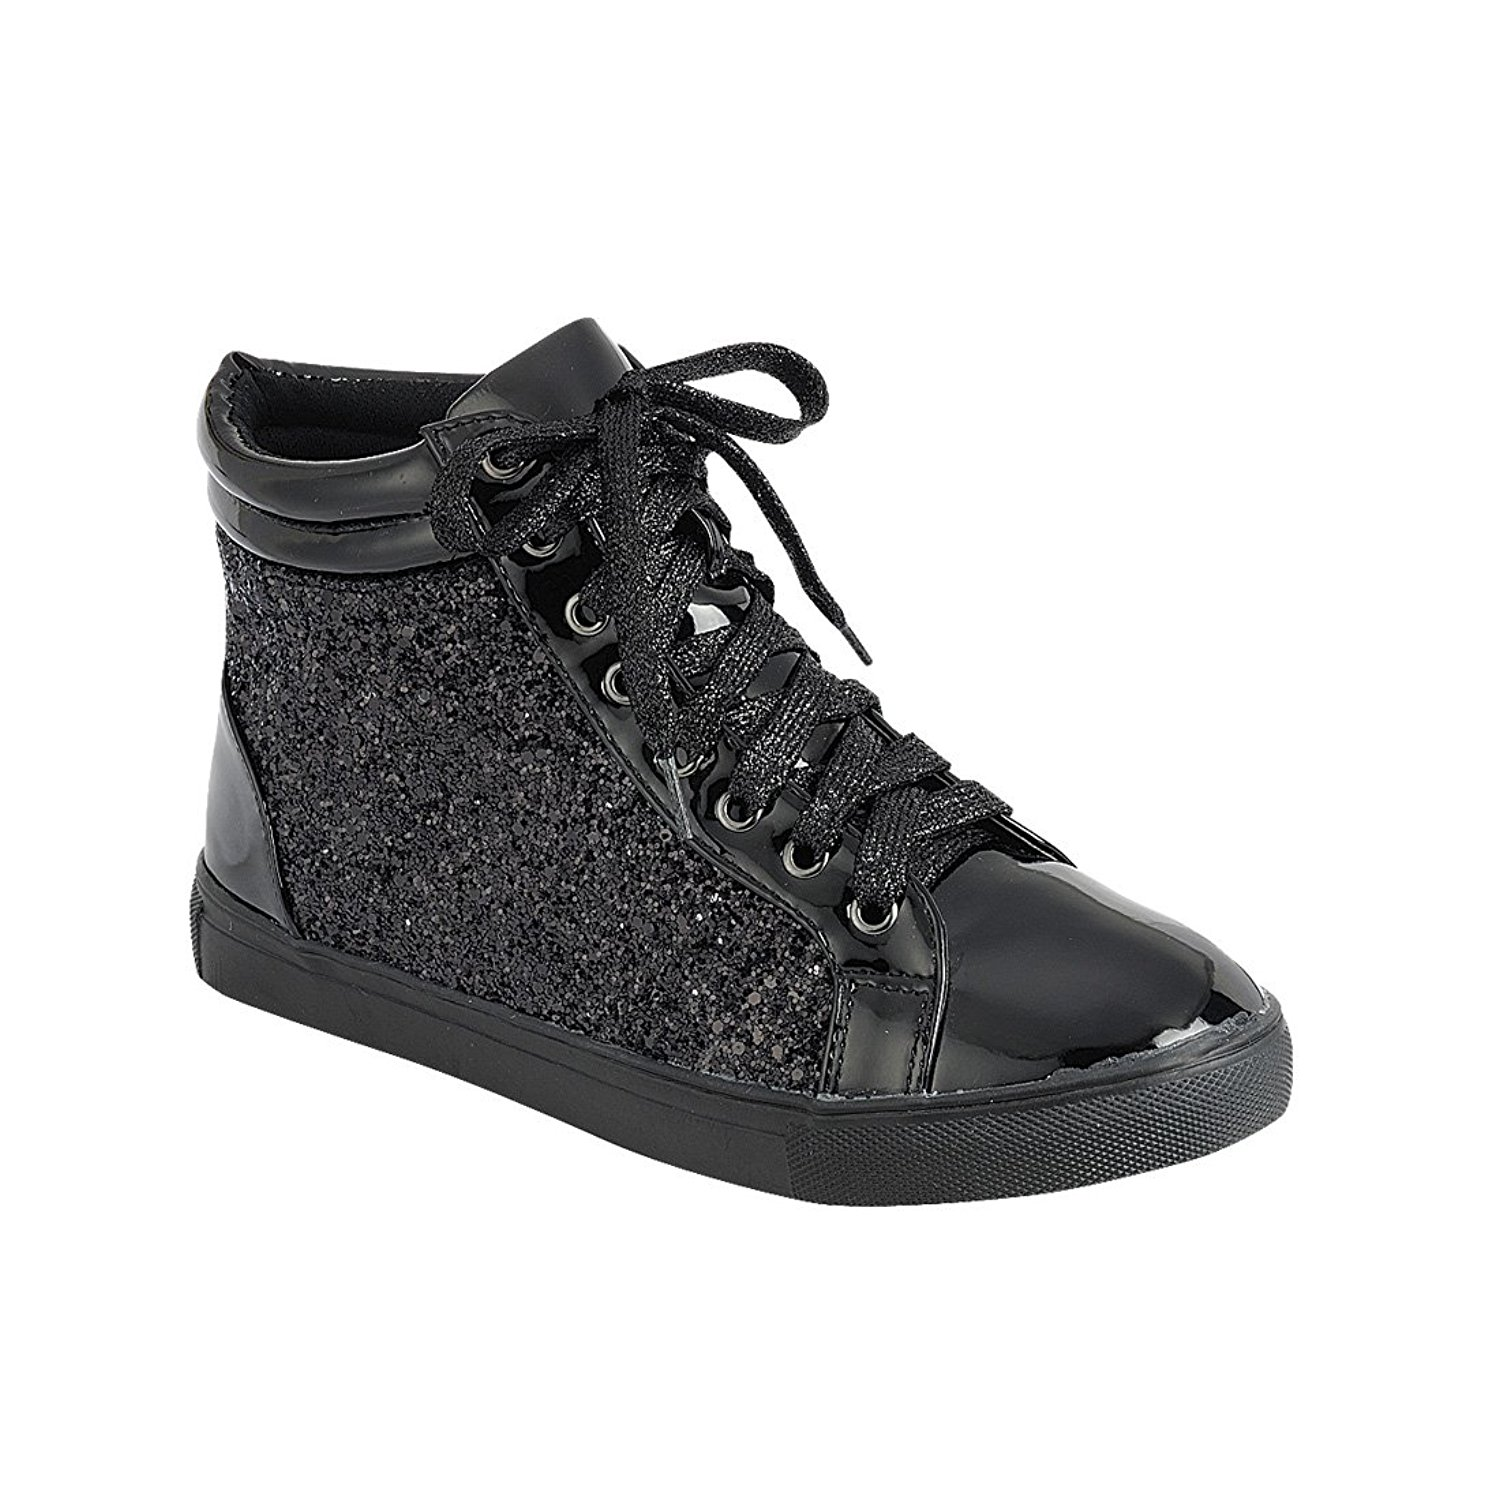 Women Fashion Light Weight Glitter Metallic Leatherette Quilted Lace Up Shoe Lace Up Low Top Stylish Sneaker (7.5, Black Sparkle-25)